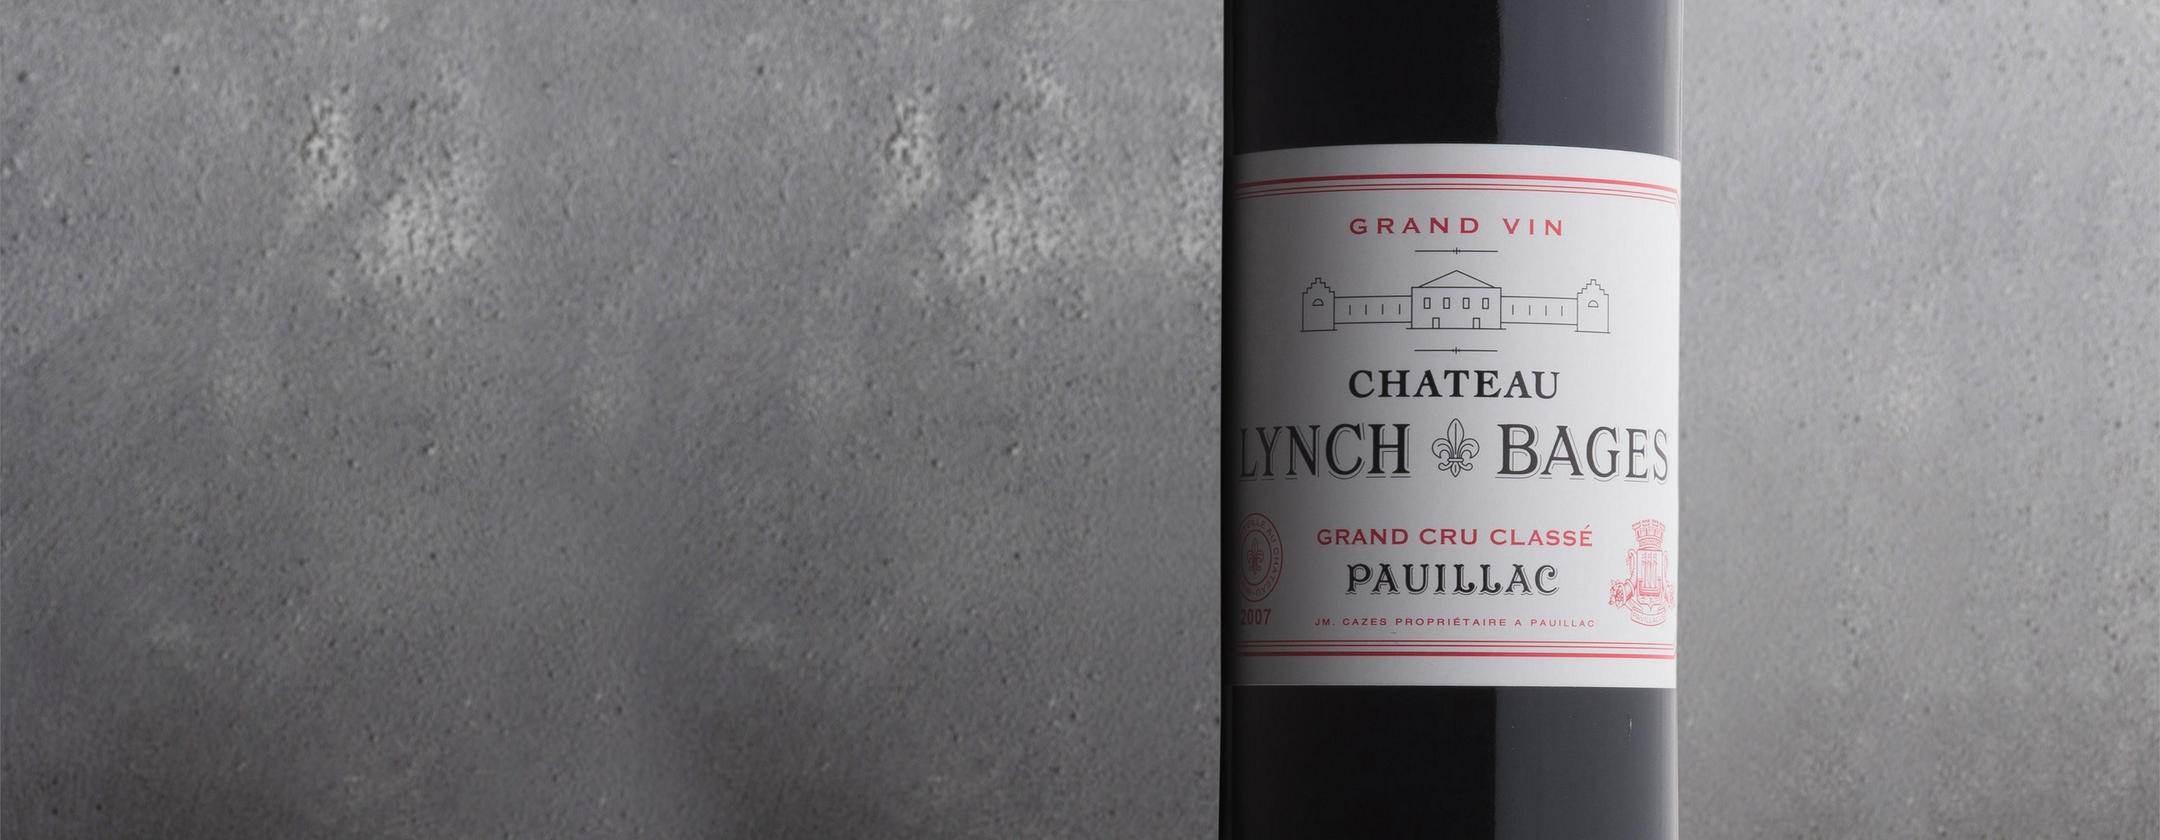 Just released _ 2020 Ch. Lynch-Bages, Pauillac